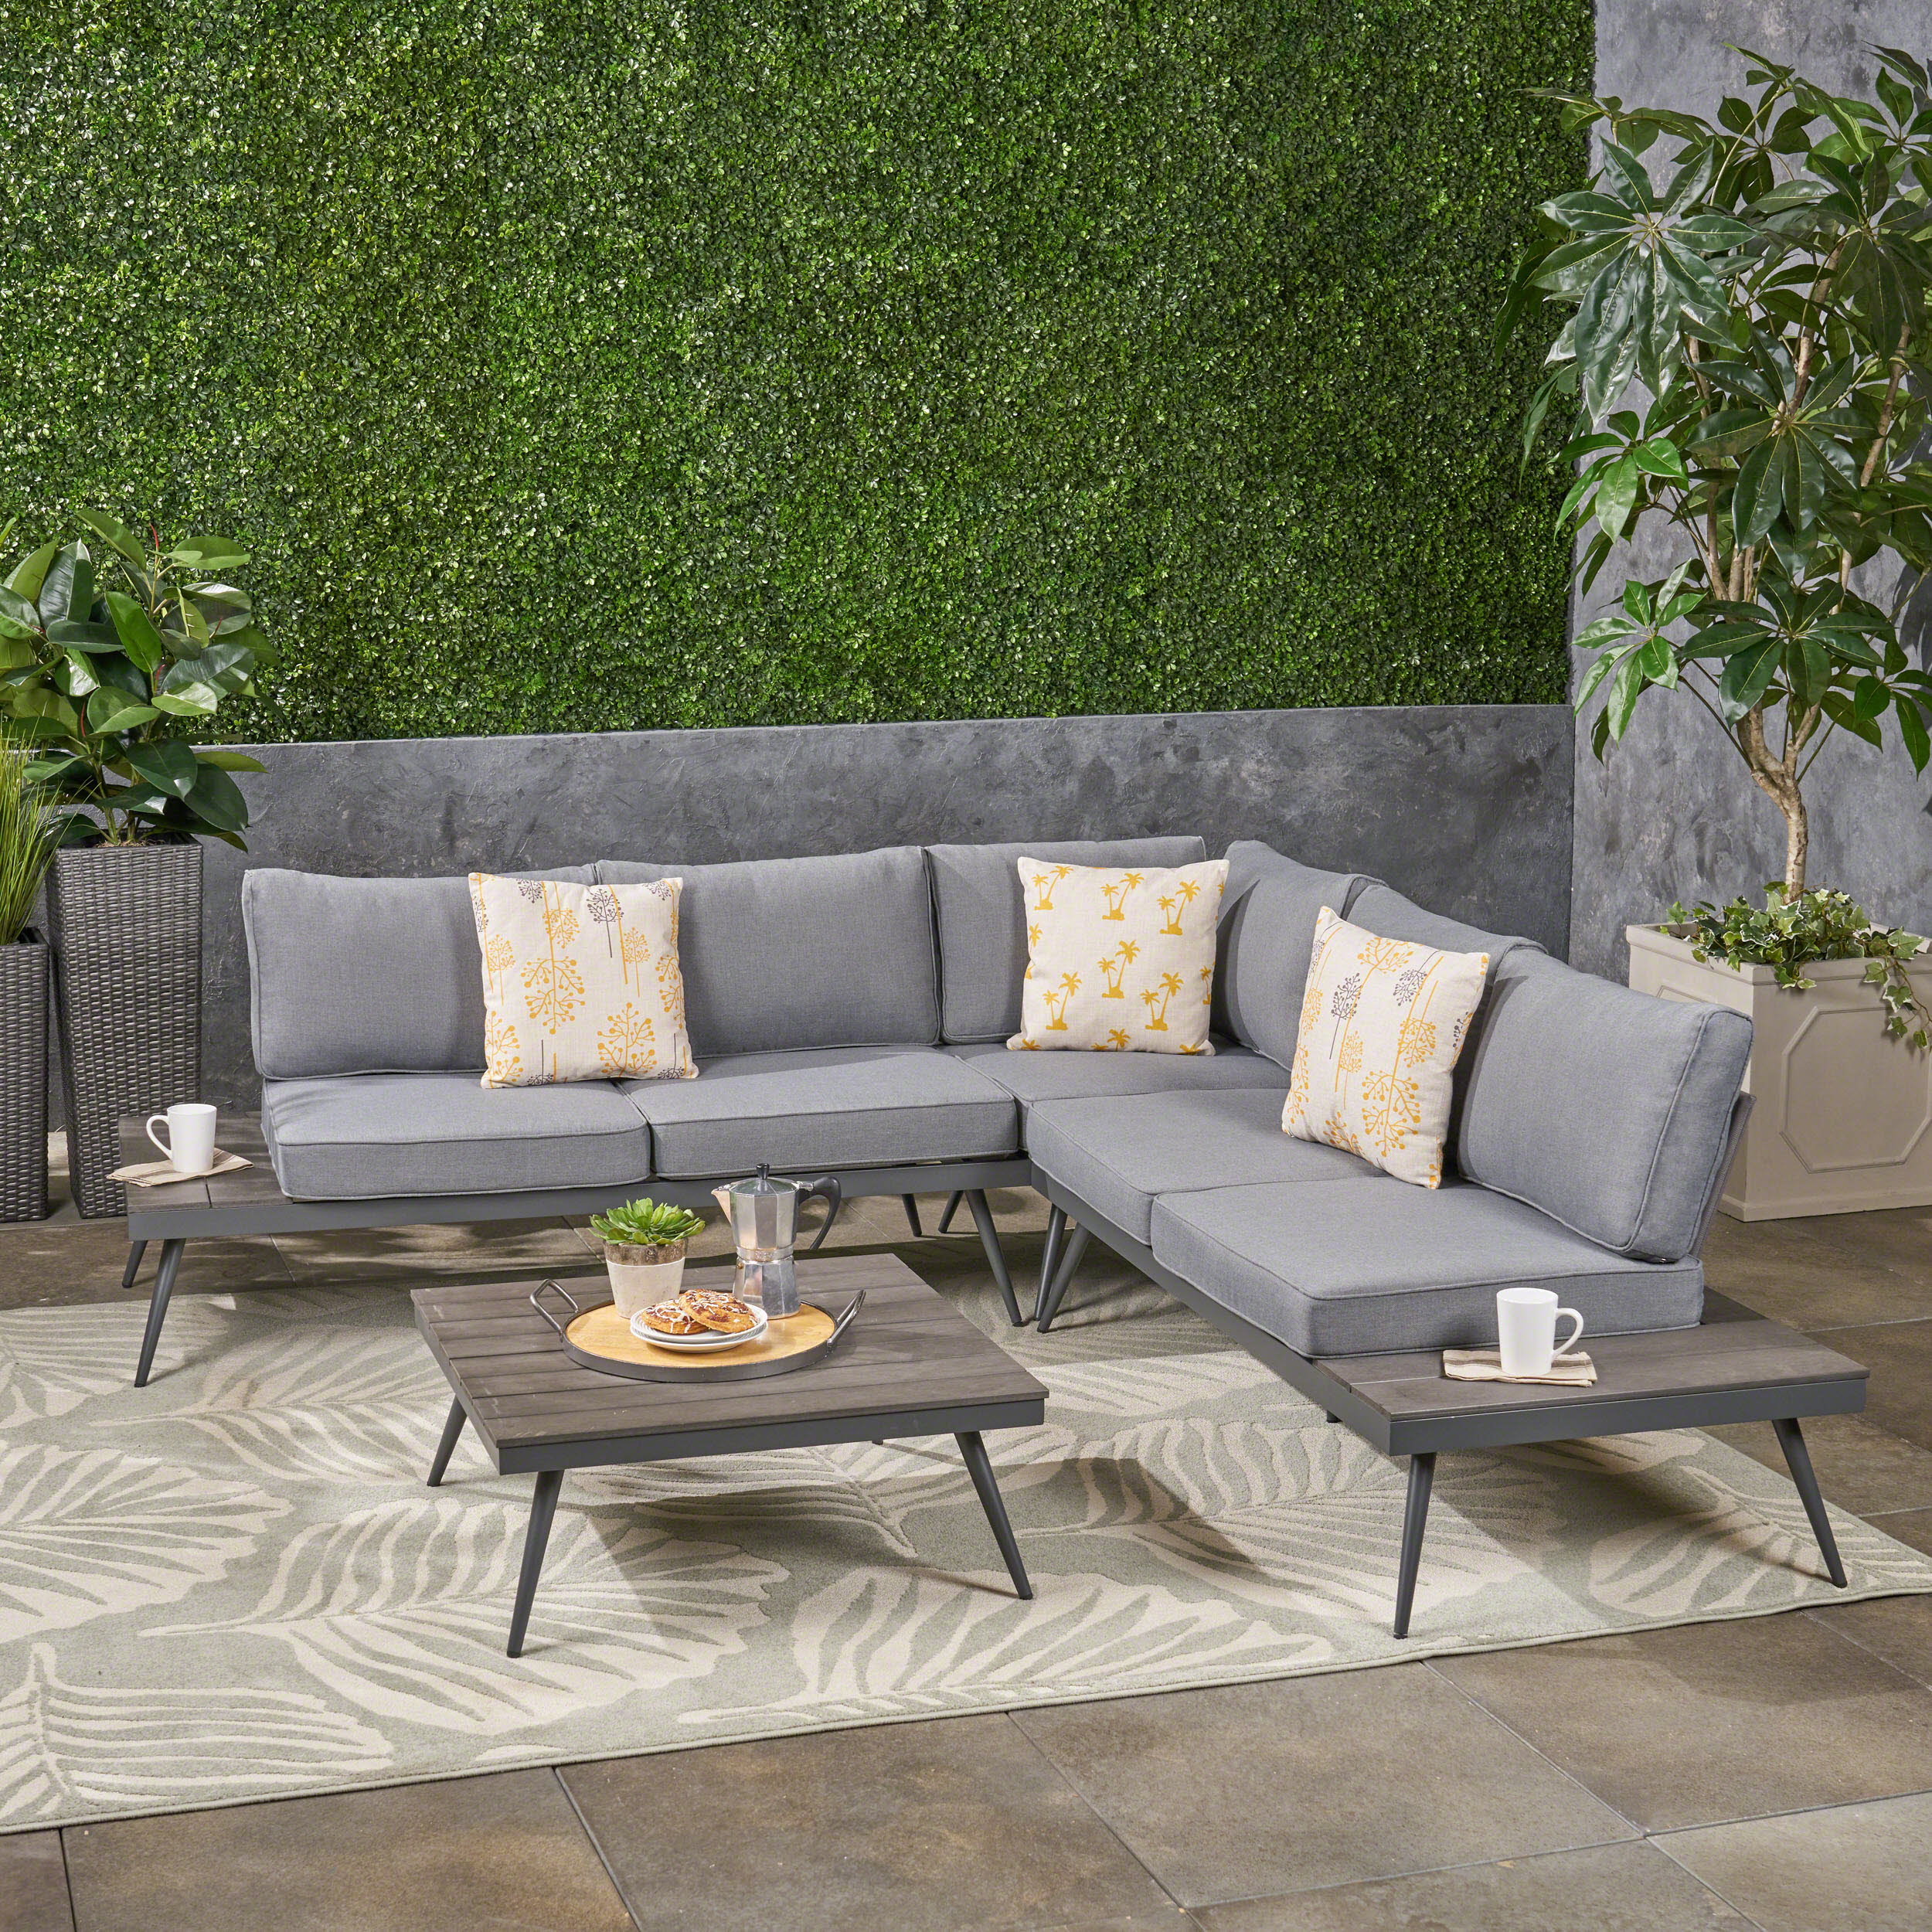 Cristian Outdoor 4 Piece Wood and Aluminum V-Shaped Sofa Set, Gray, Gray